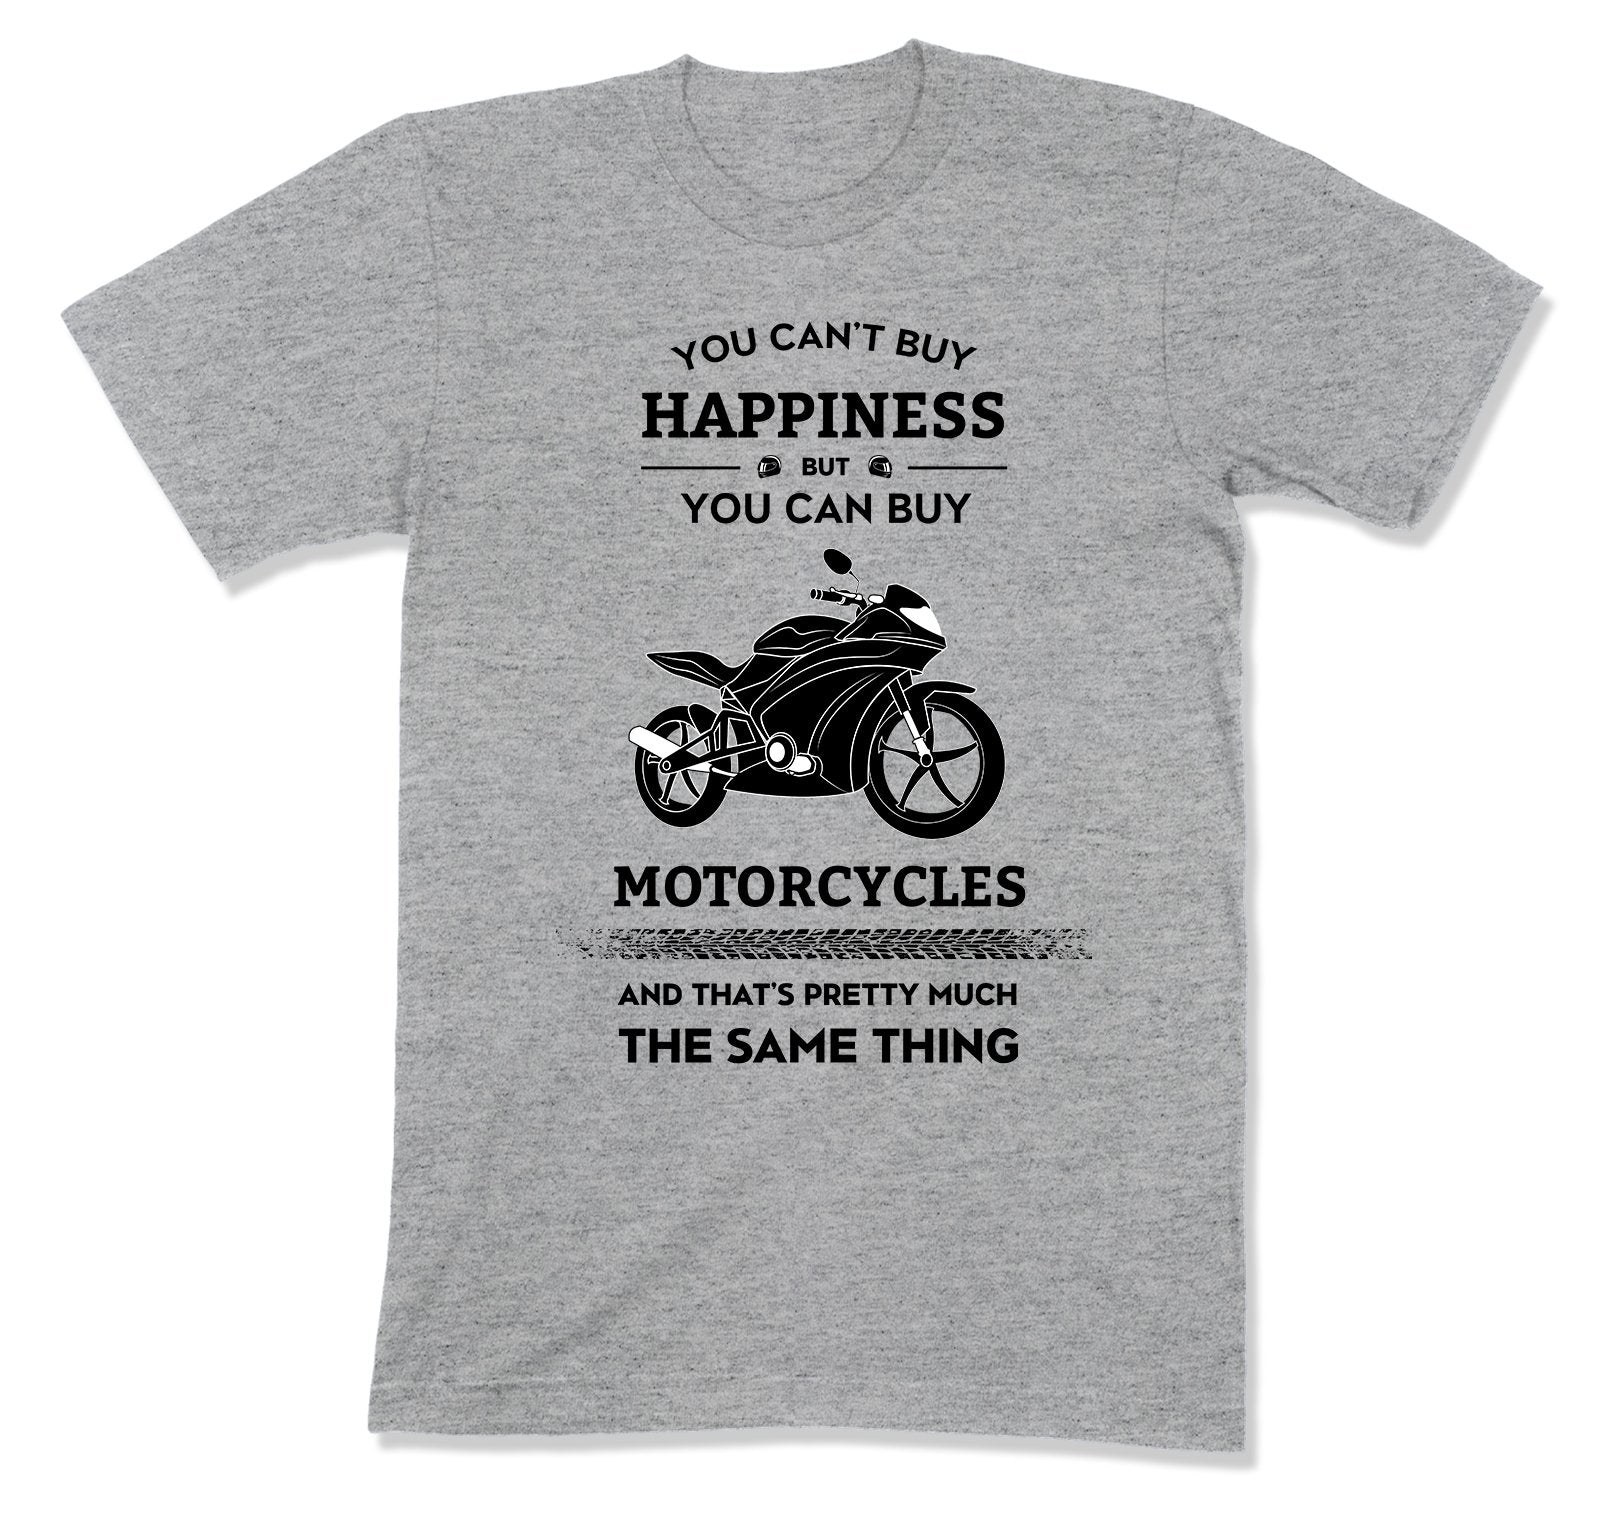 You Can't Buy Happiness But You Can Buy Motorcycles T-Shirt - MD-447C